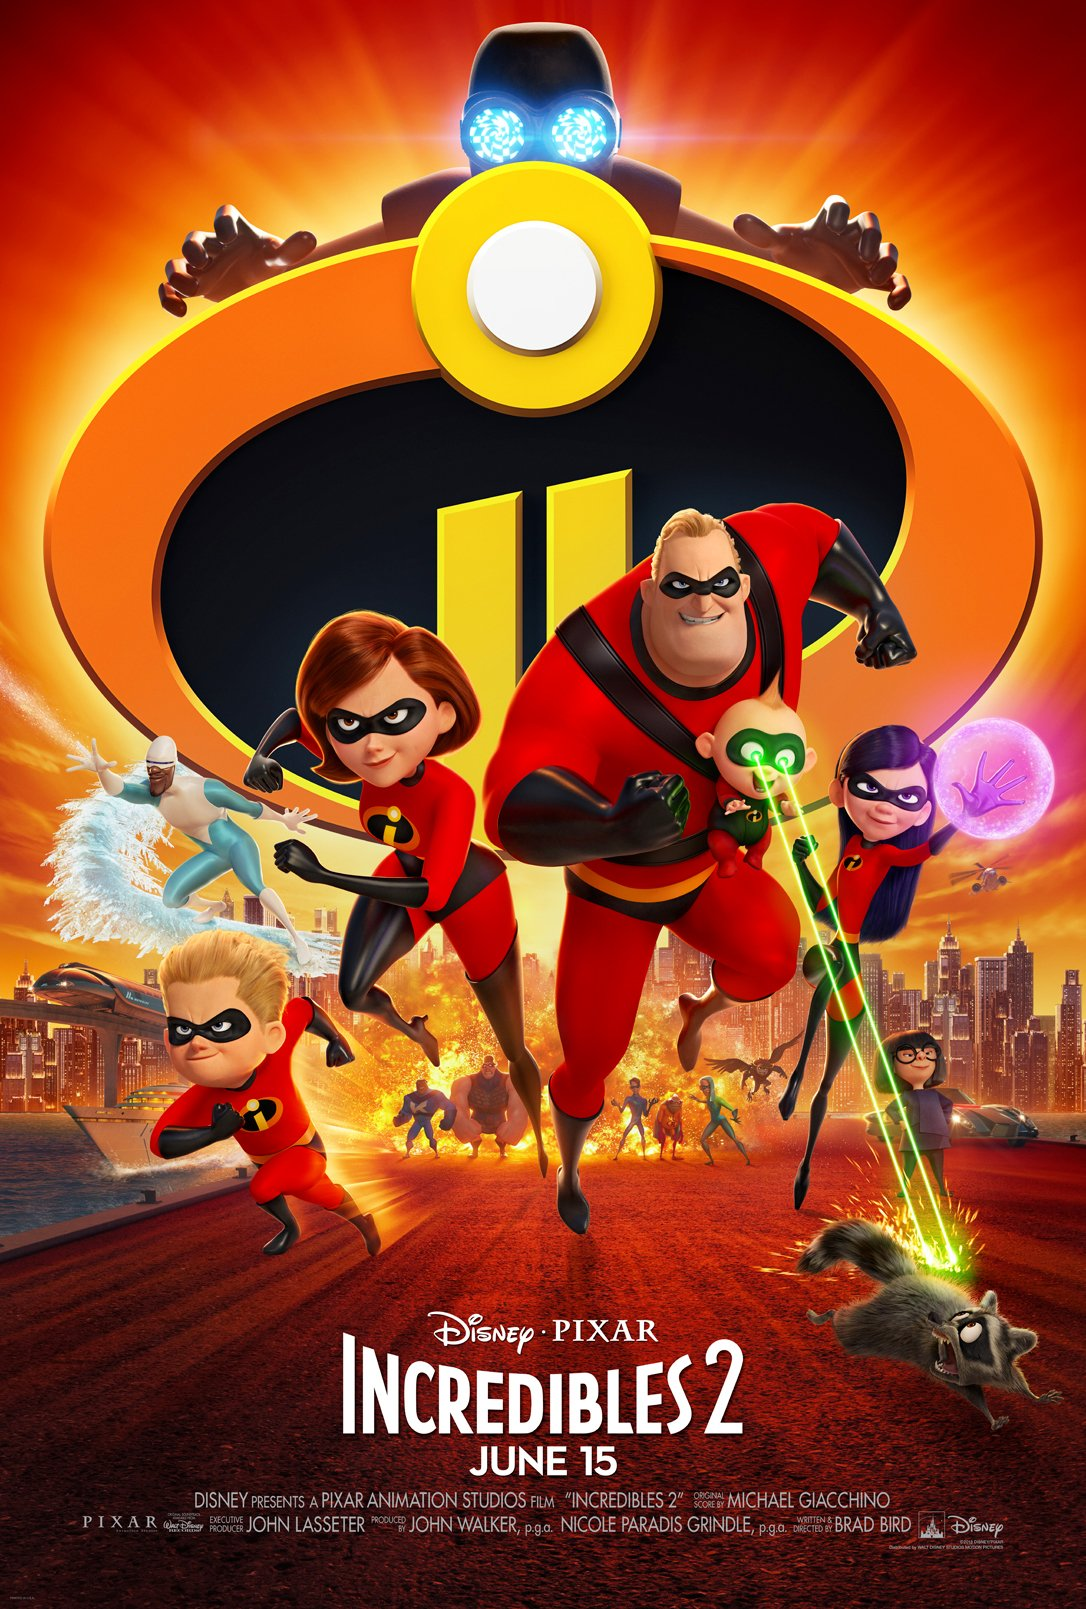 Disney Pixar's INCREDIBLES 2 Incredibly Smashes Box Office